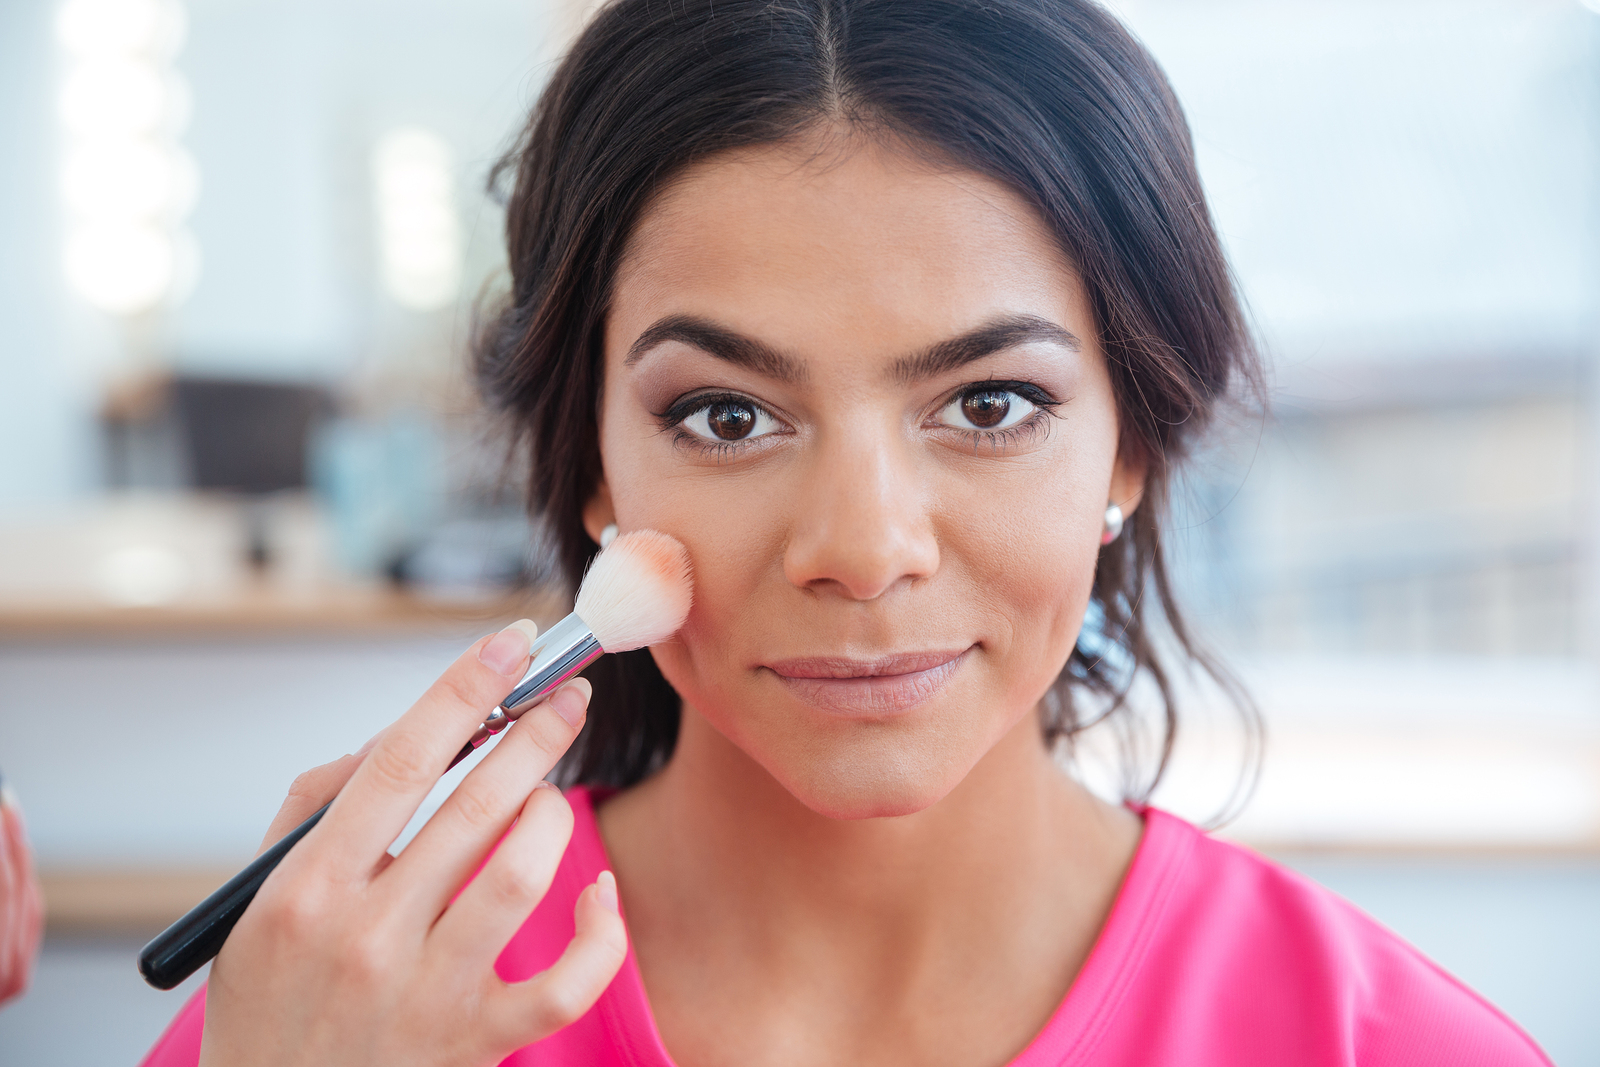 Slim Your Face with 4 Easy Makeup Tips